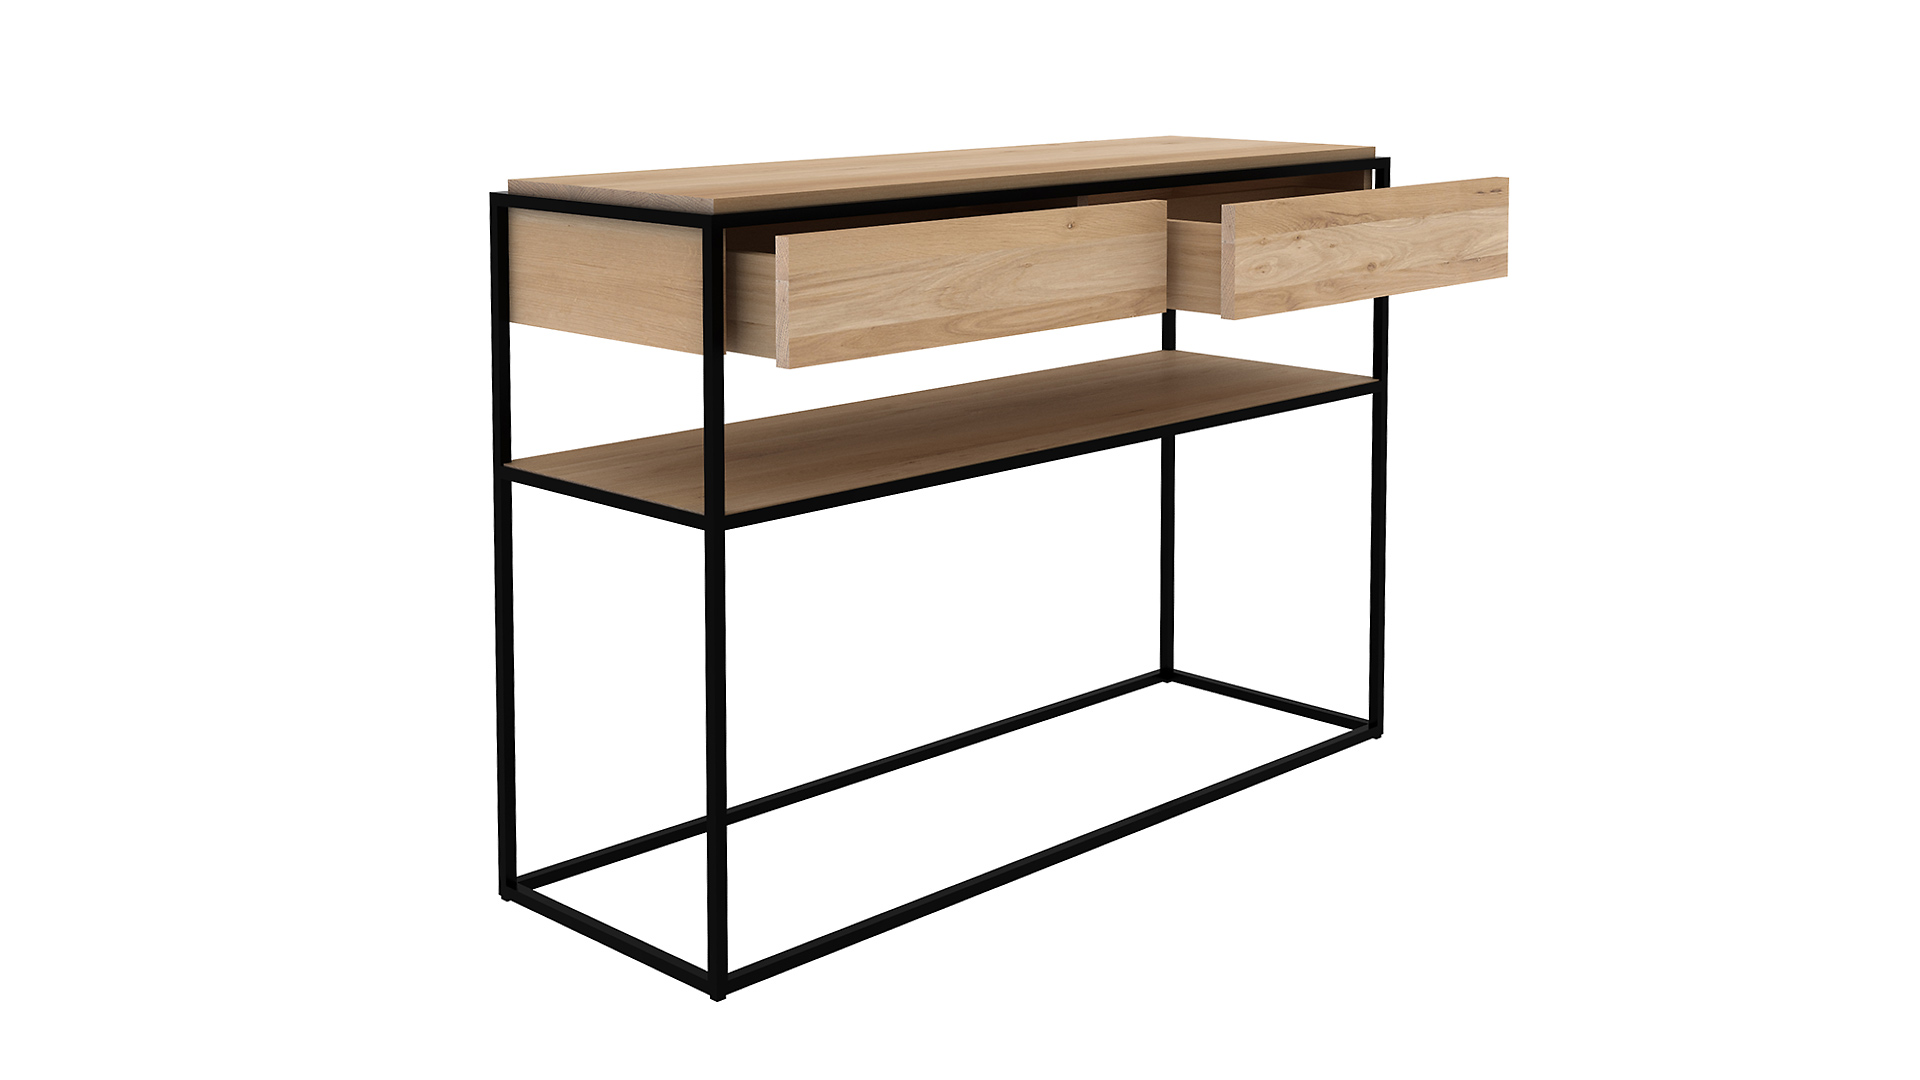 Picture of: Monolit Console Table Ethnicraft Natural Bed Company